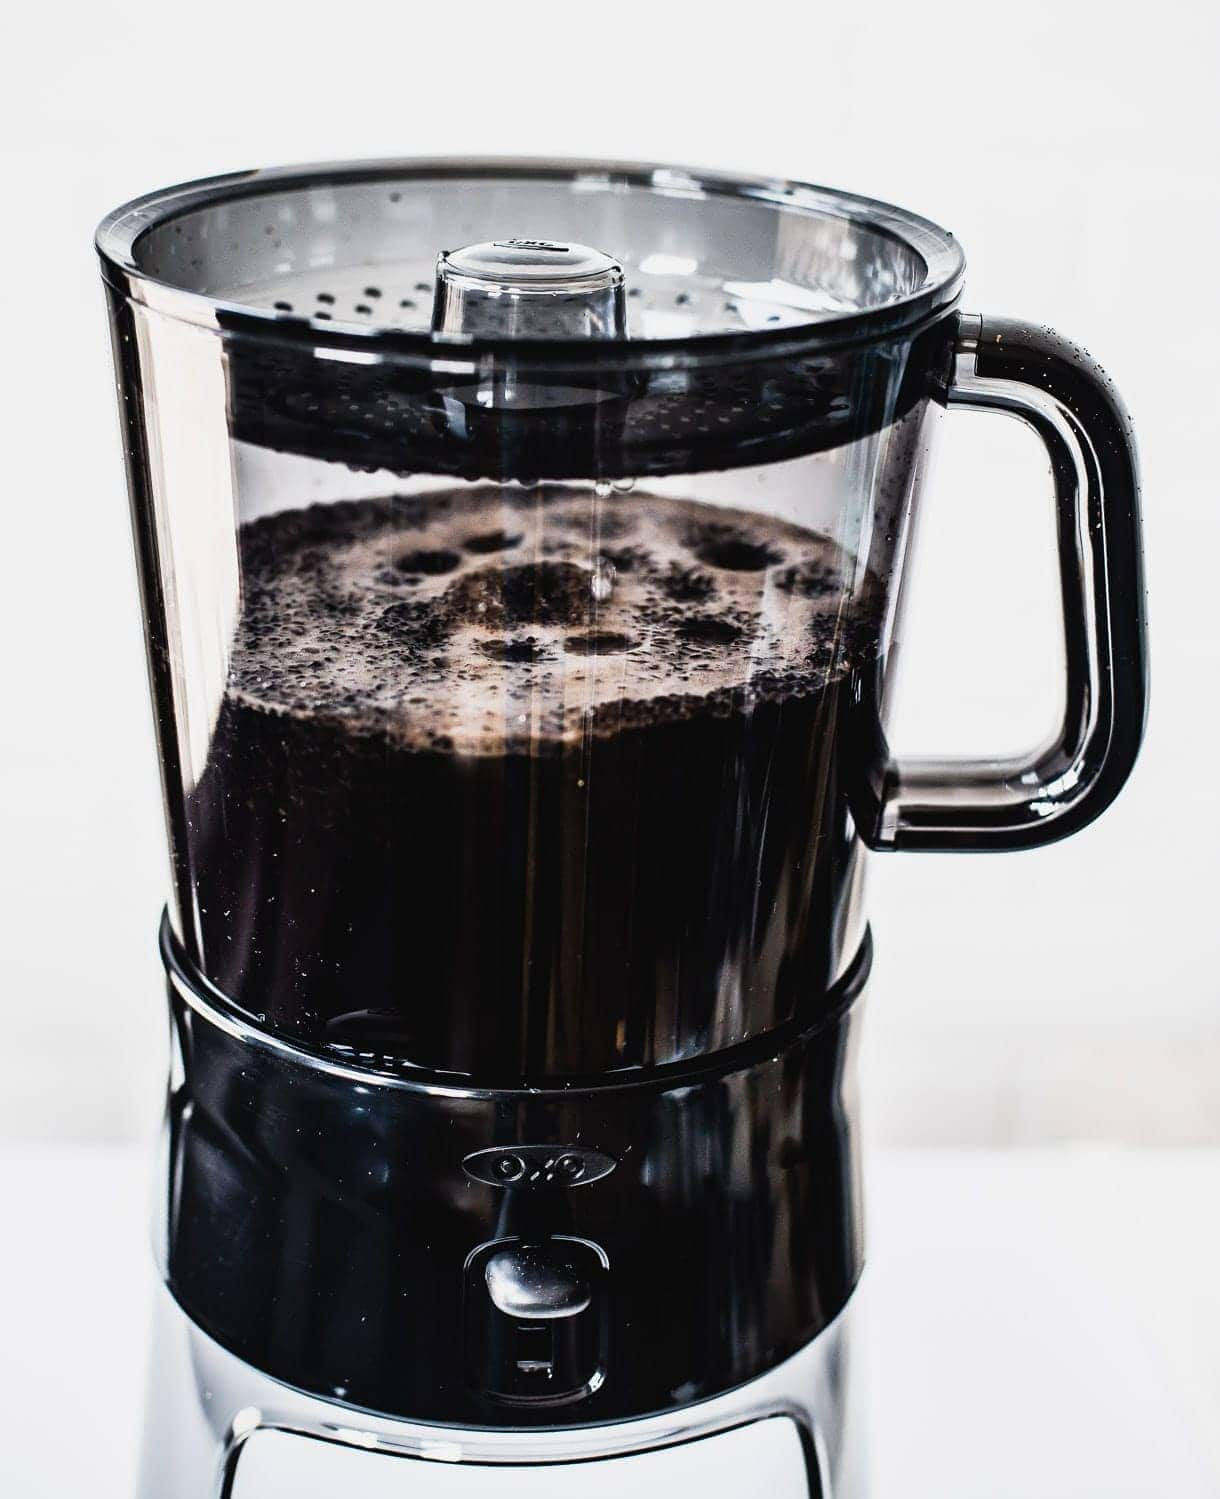 OXO cold brew machine